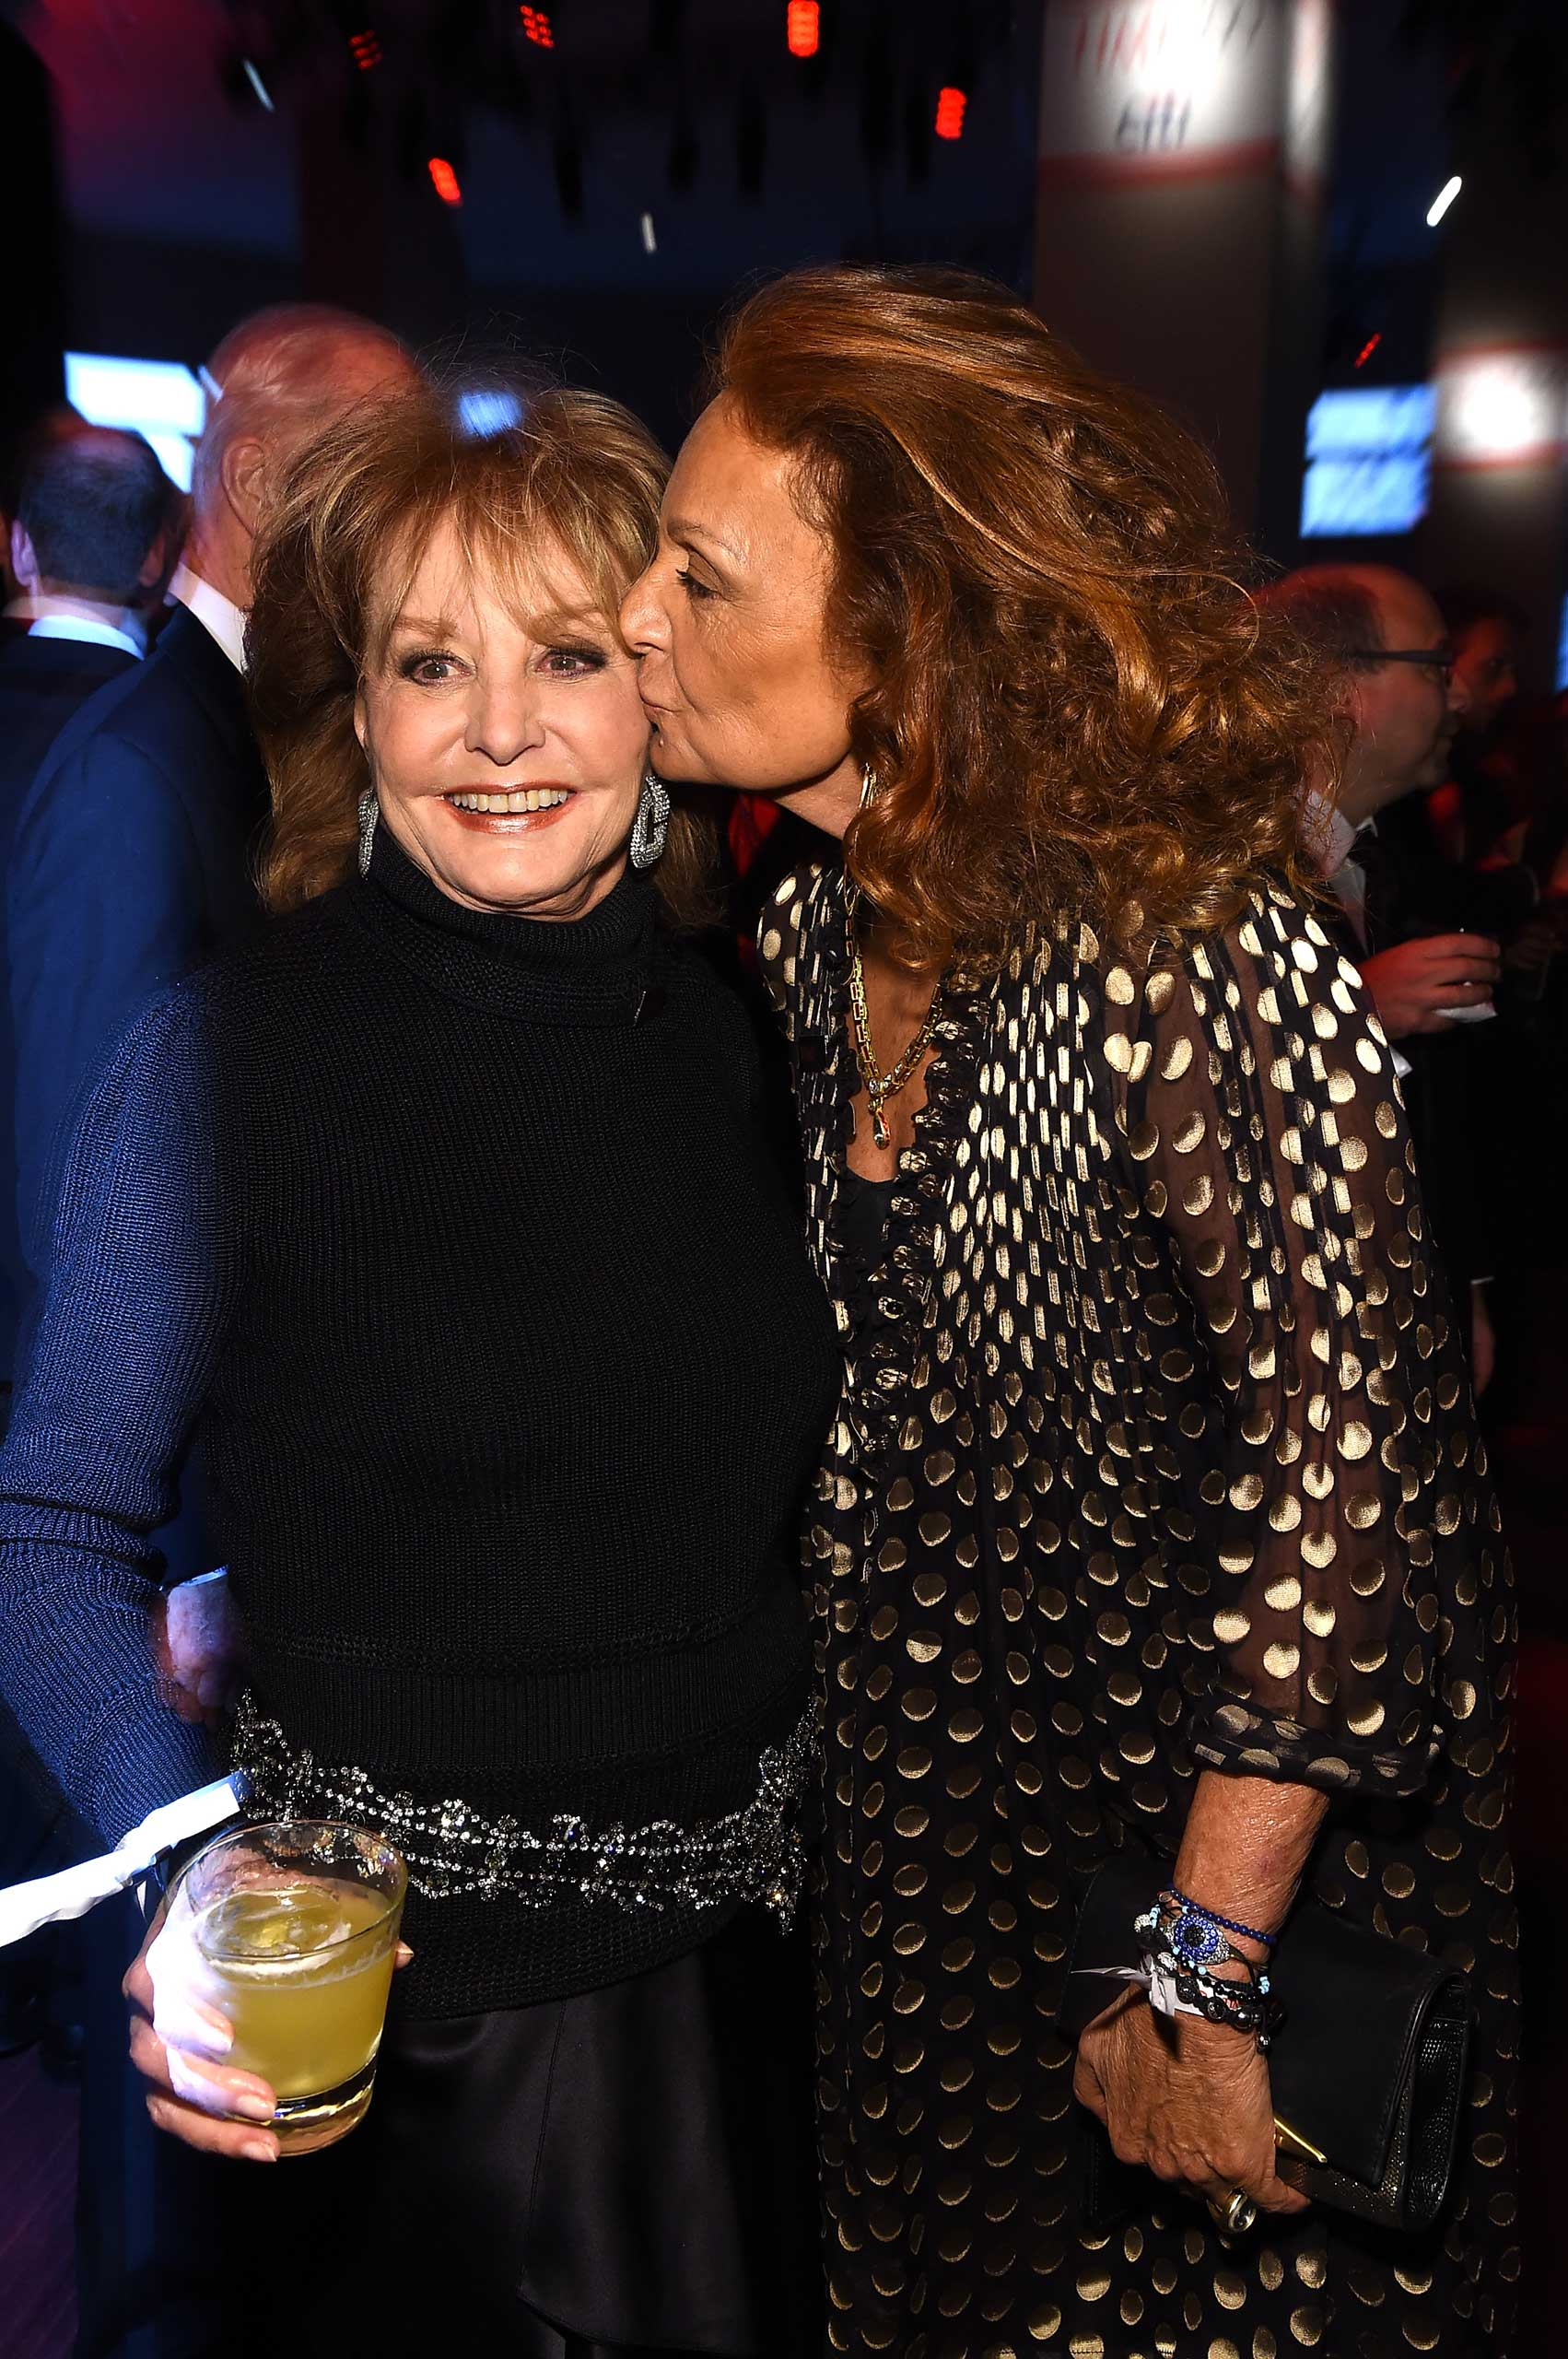 Barbara Walters and Diane von Furstenberg attend the TIME 100 Gala at Jazz at Lincoln Center in New York City on Apr. 21, 2015.